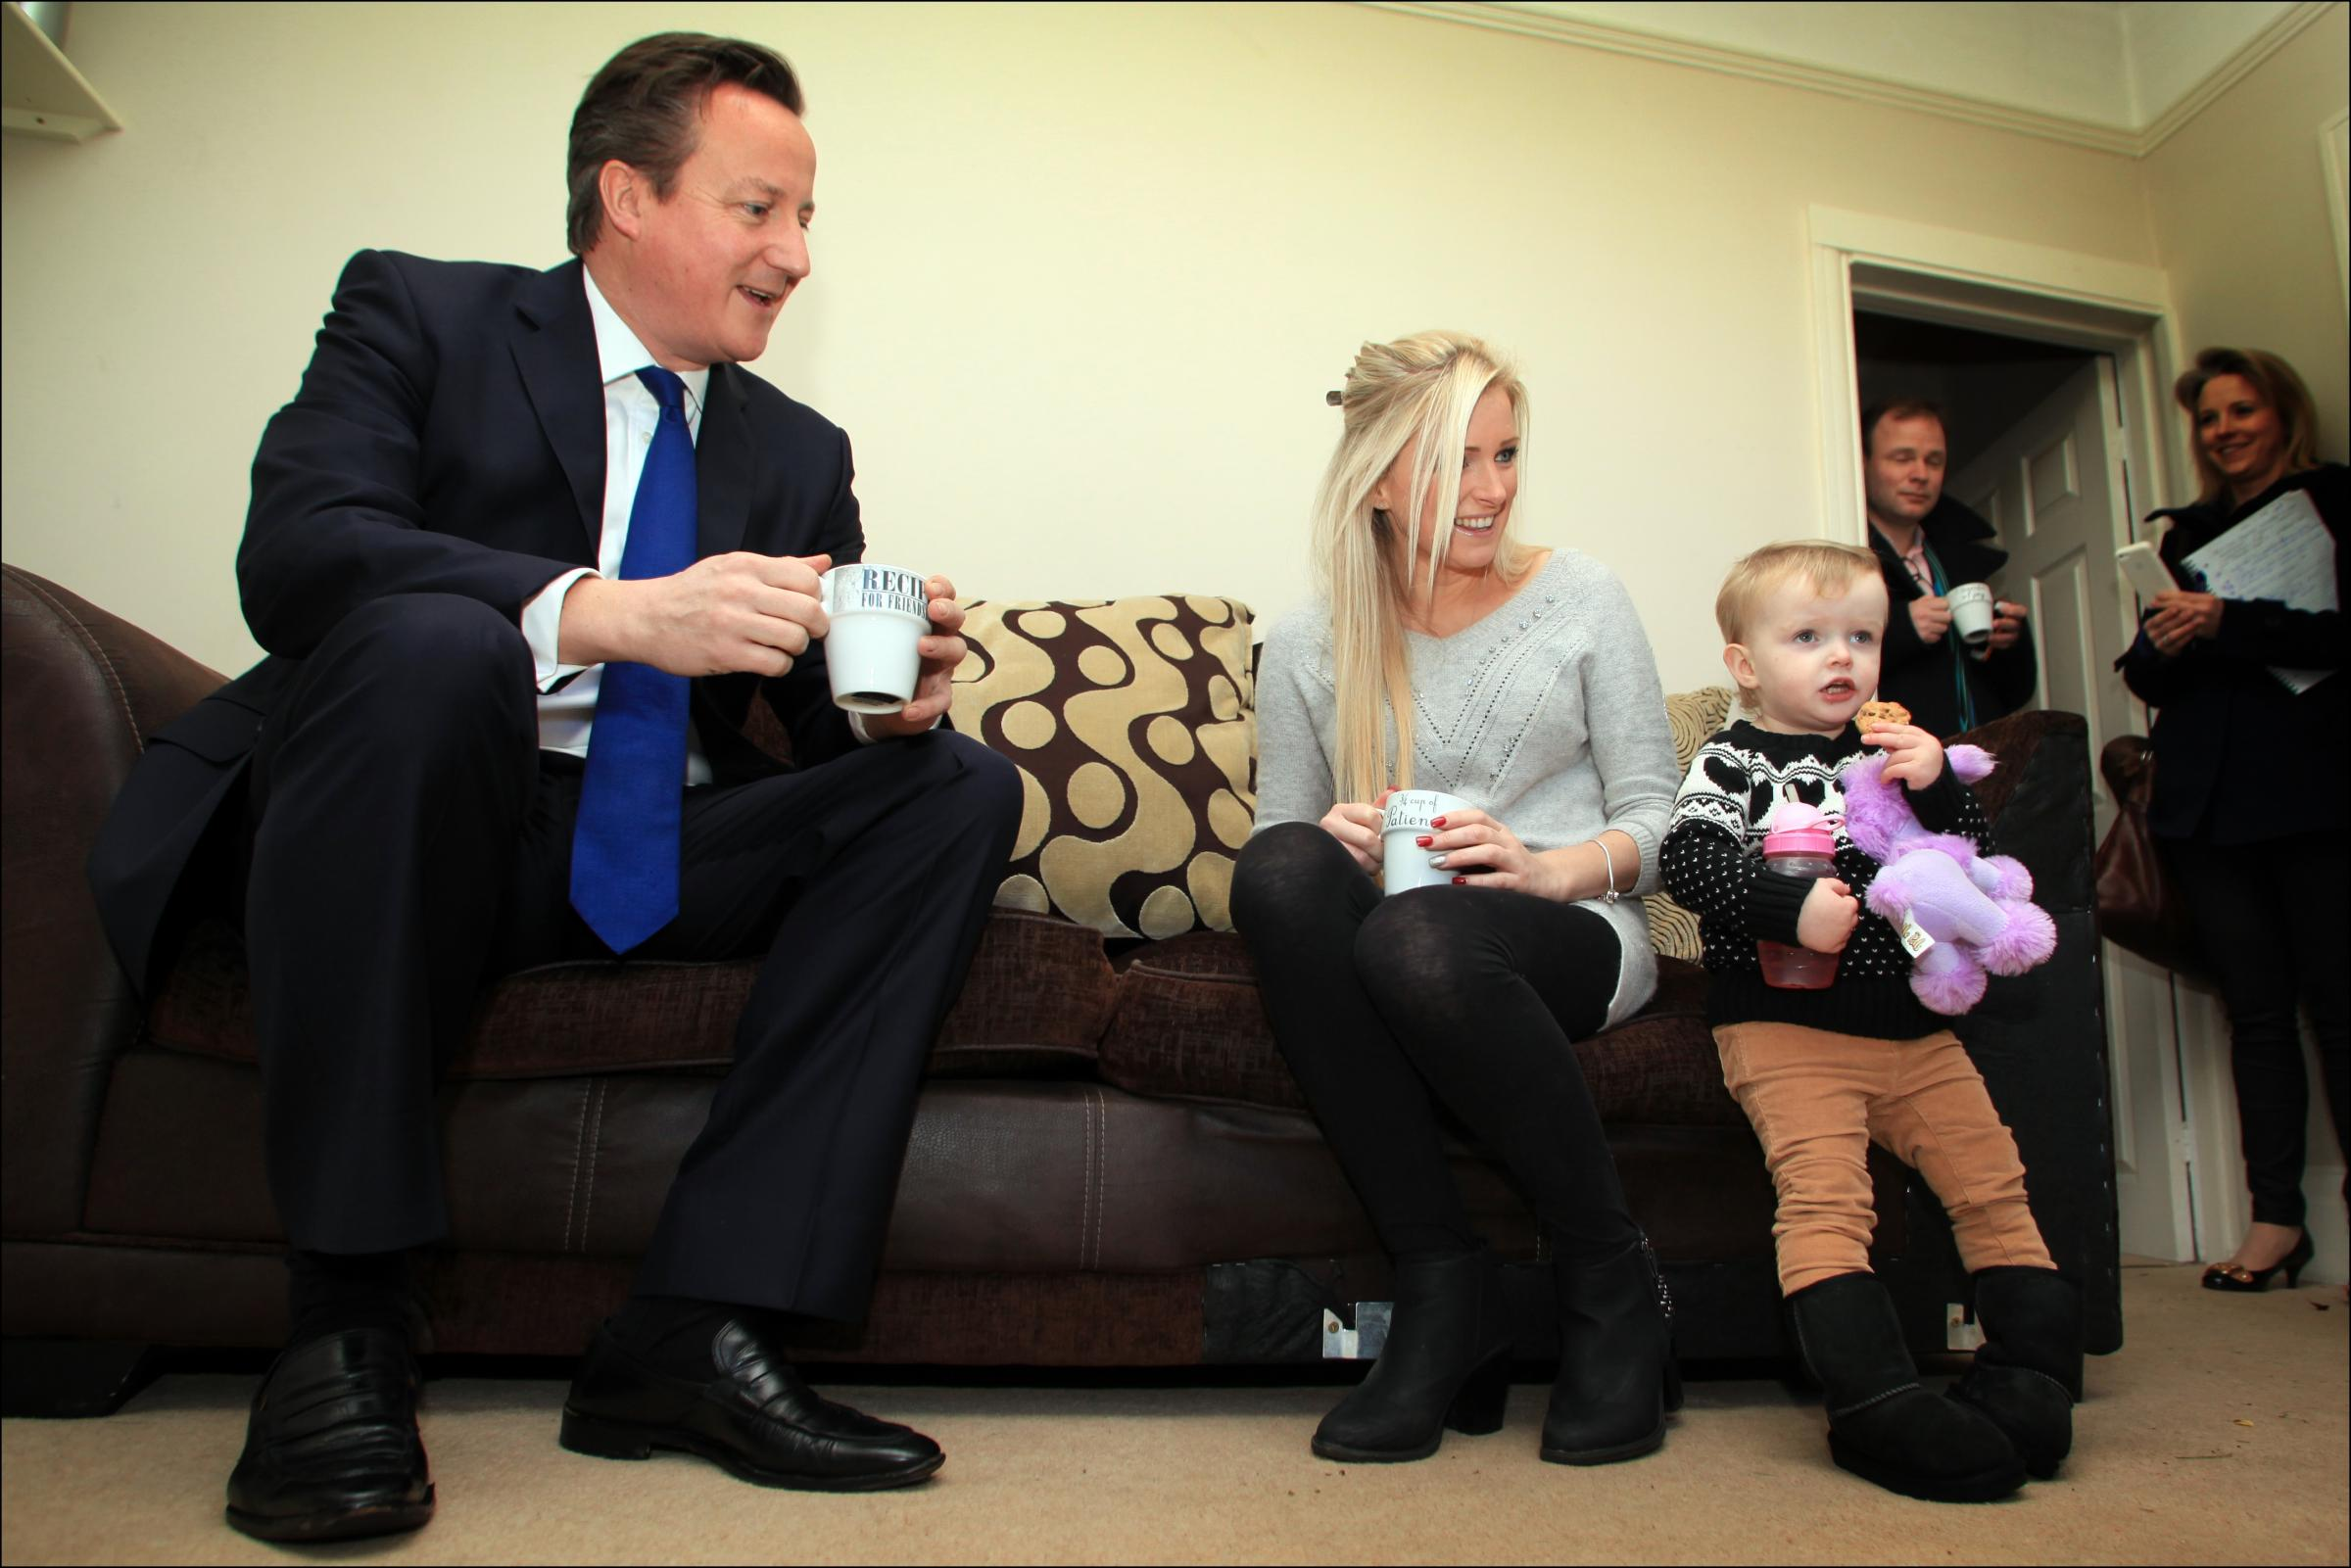 Prime Minister David Cameron's visit to Sharon Ray and her daughter Maisie